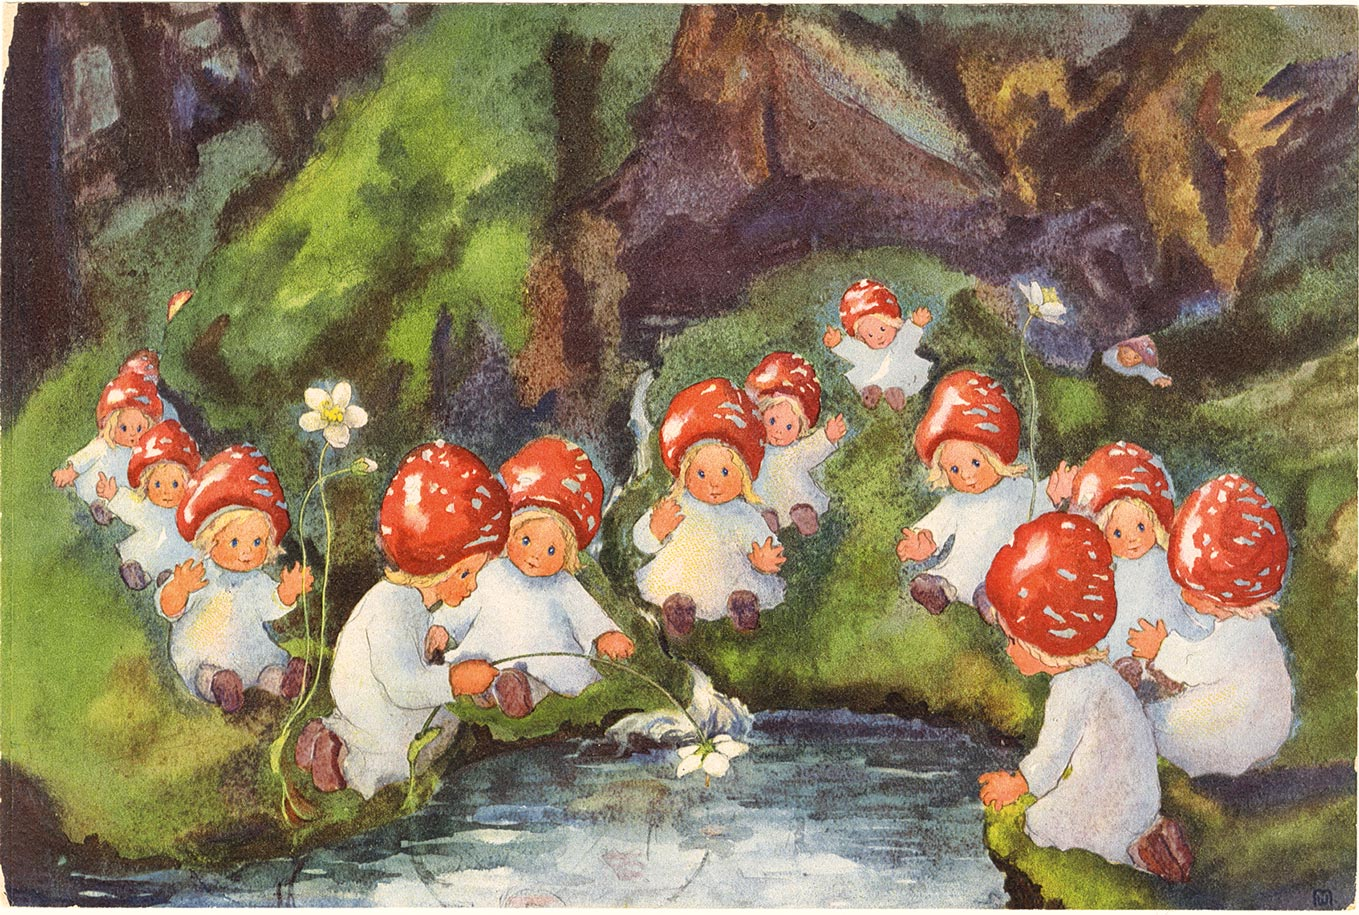 ||Pilzkinder am Teich..Toadstool children by the pond||